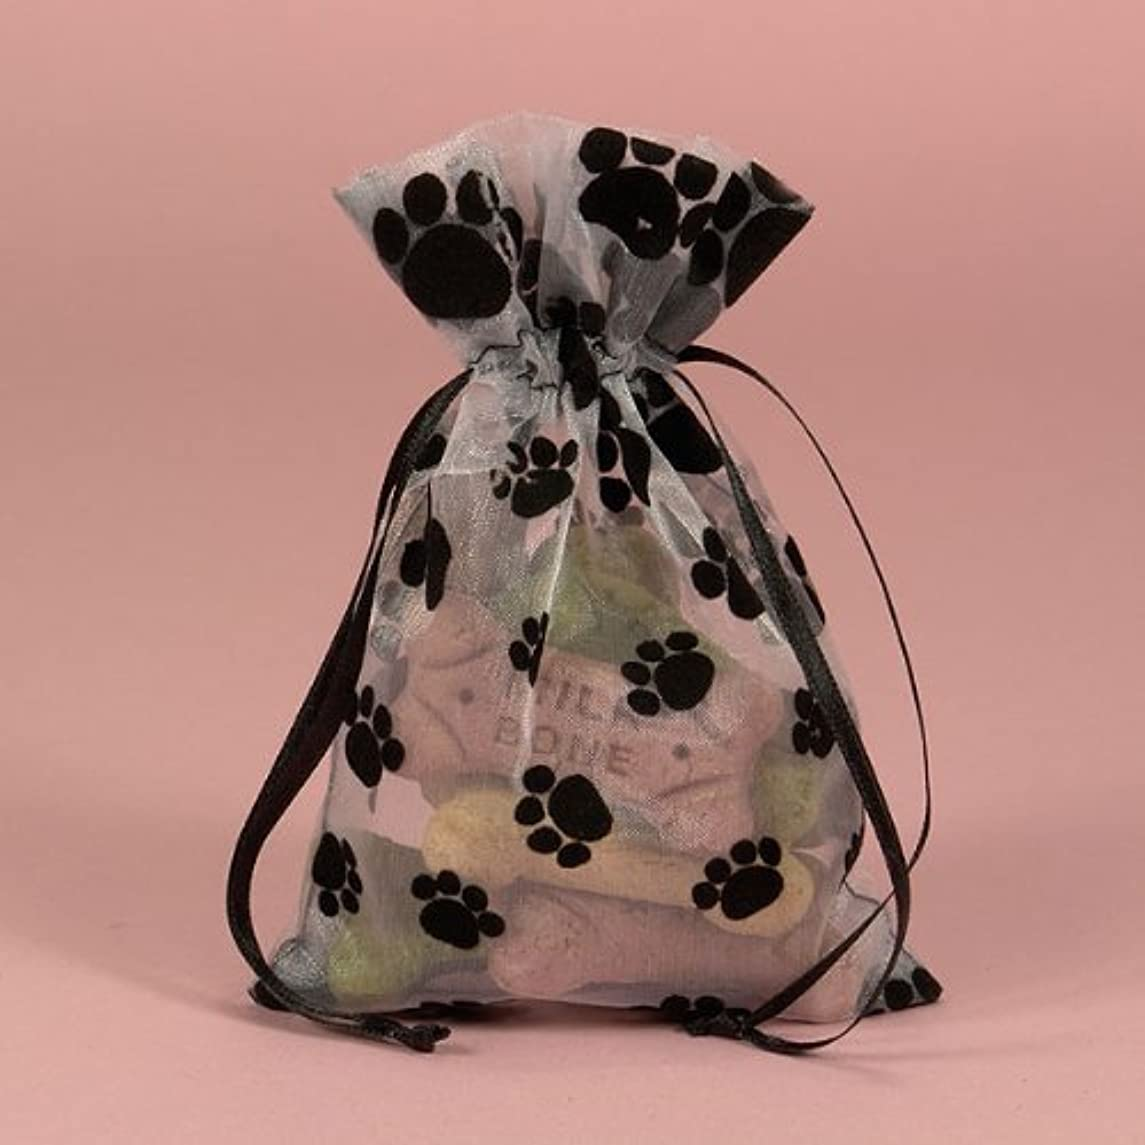 6 Animal Paw Print Dog Party Favors Favor Drawstring Organza Pouch Pouches Bag Bags 3